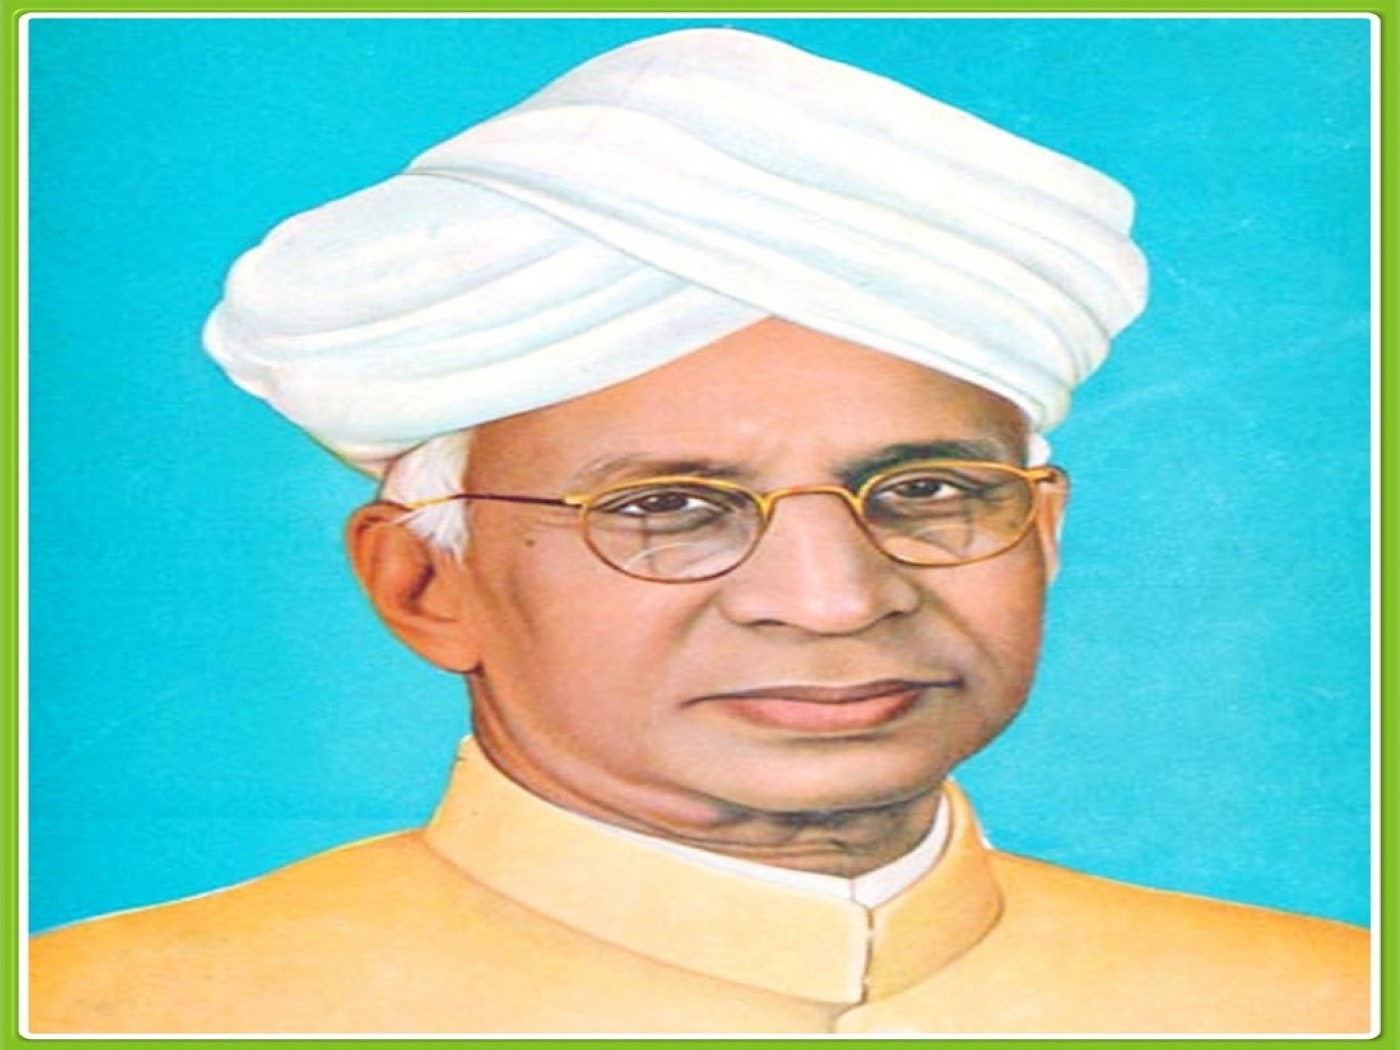 007 Sarvepalli Radhakrishnan Essay Example On Teachers Day In Fascinating India 1400